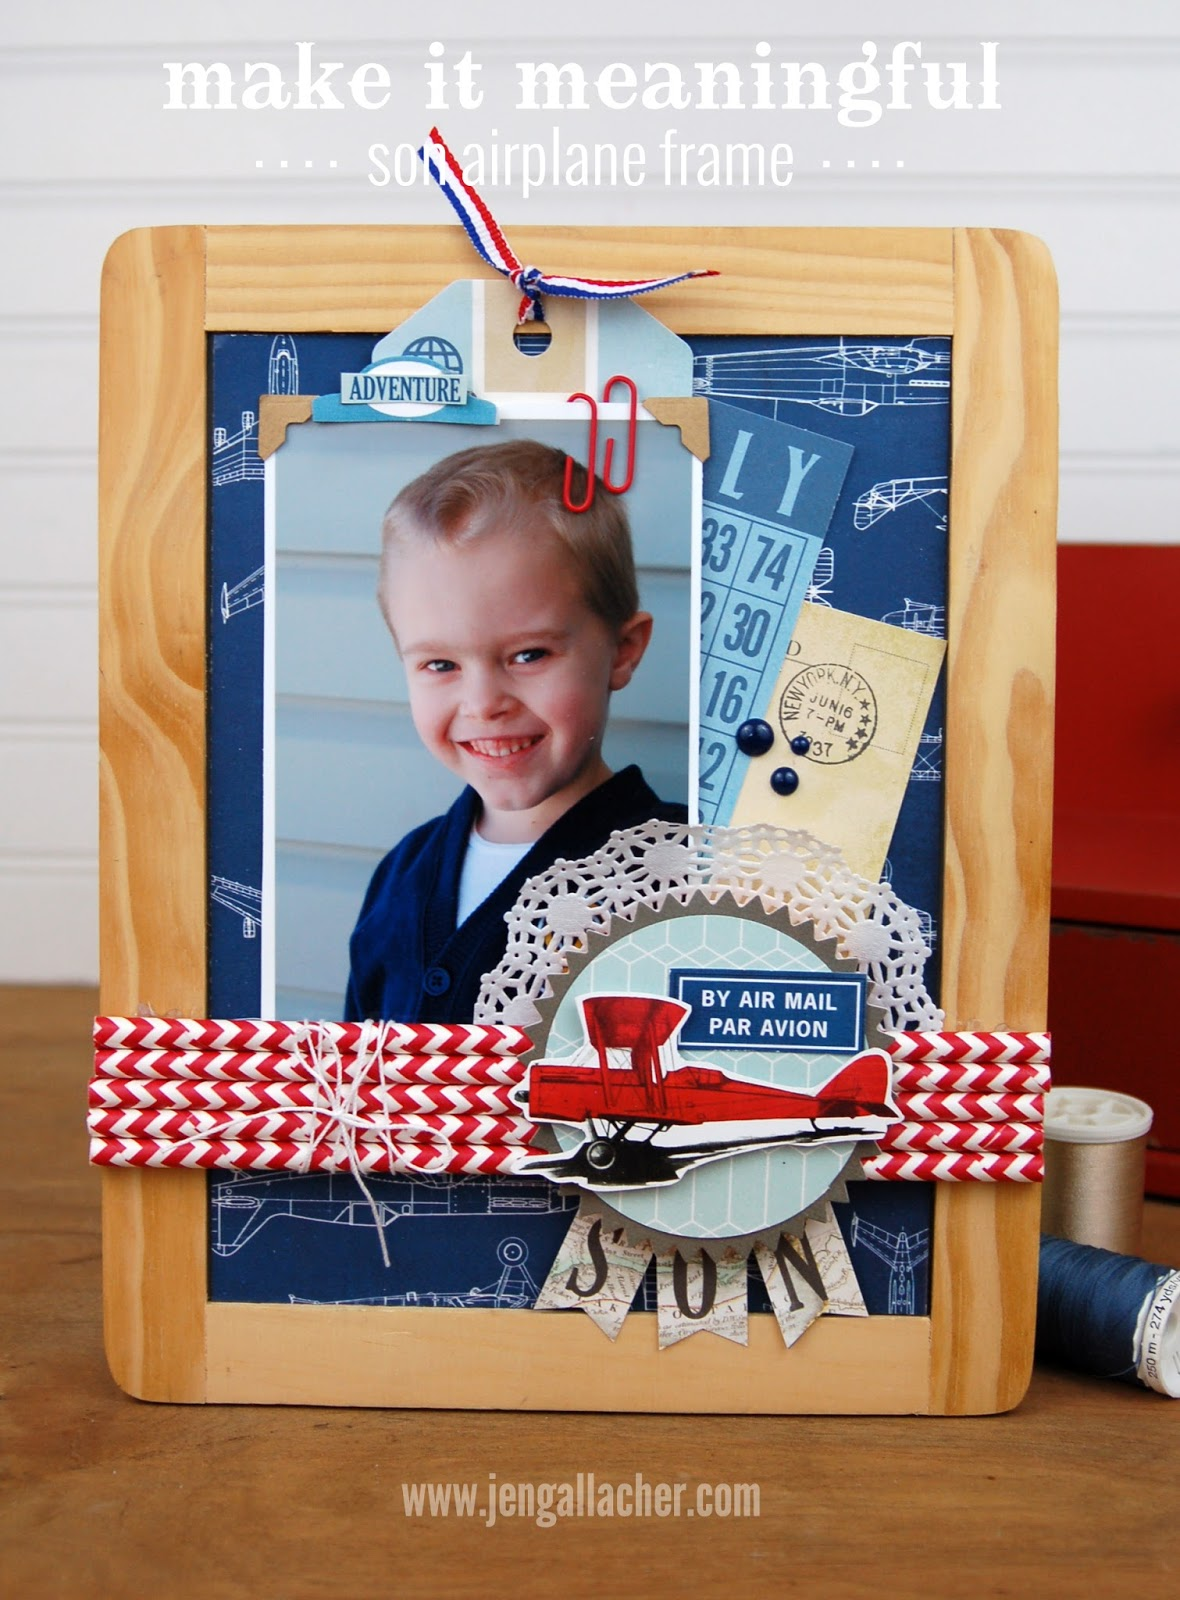 Make It Meaningful Airplane and Paper Straw Frame by Jen Gallacher at www.jengallacher.com